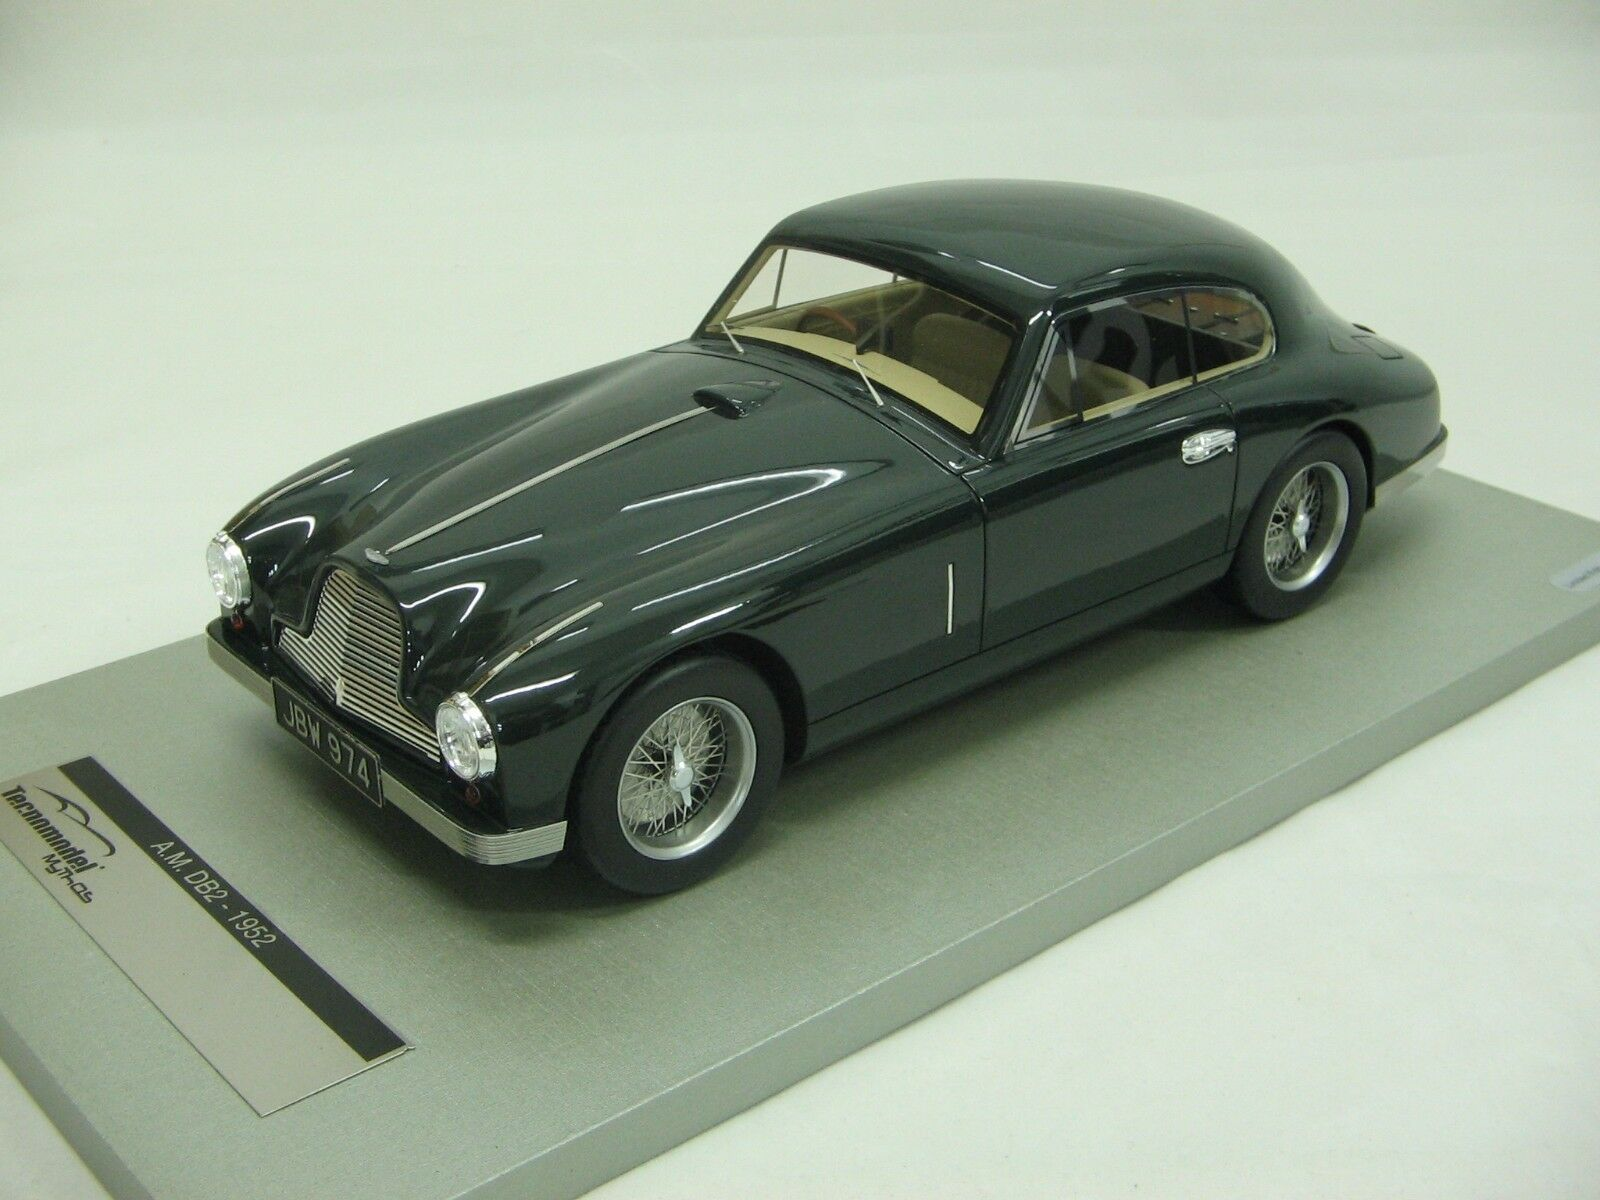 1 18 18 18 Scale Tecnomodel Aston Martin Db2 Coupe British green 1950- Tm18-22a bd4a1d